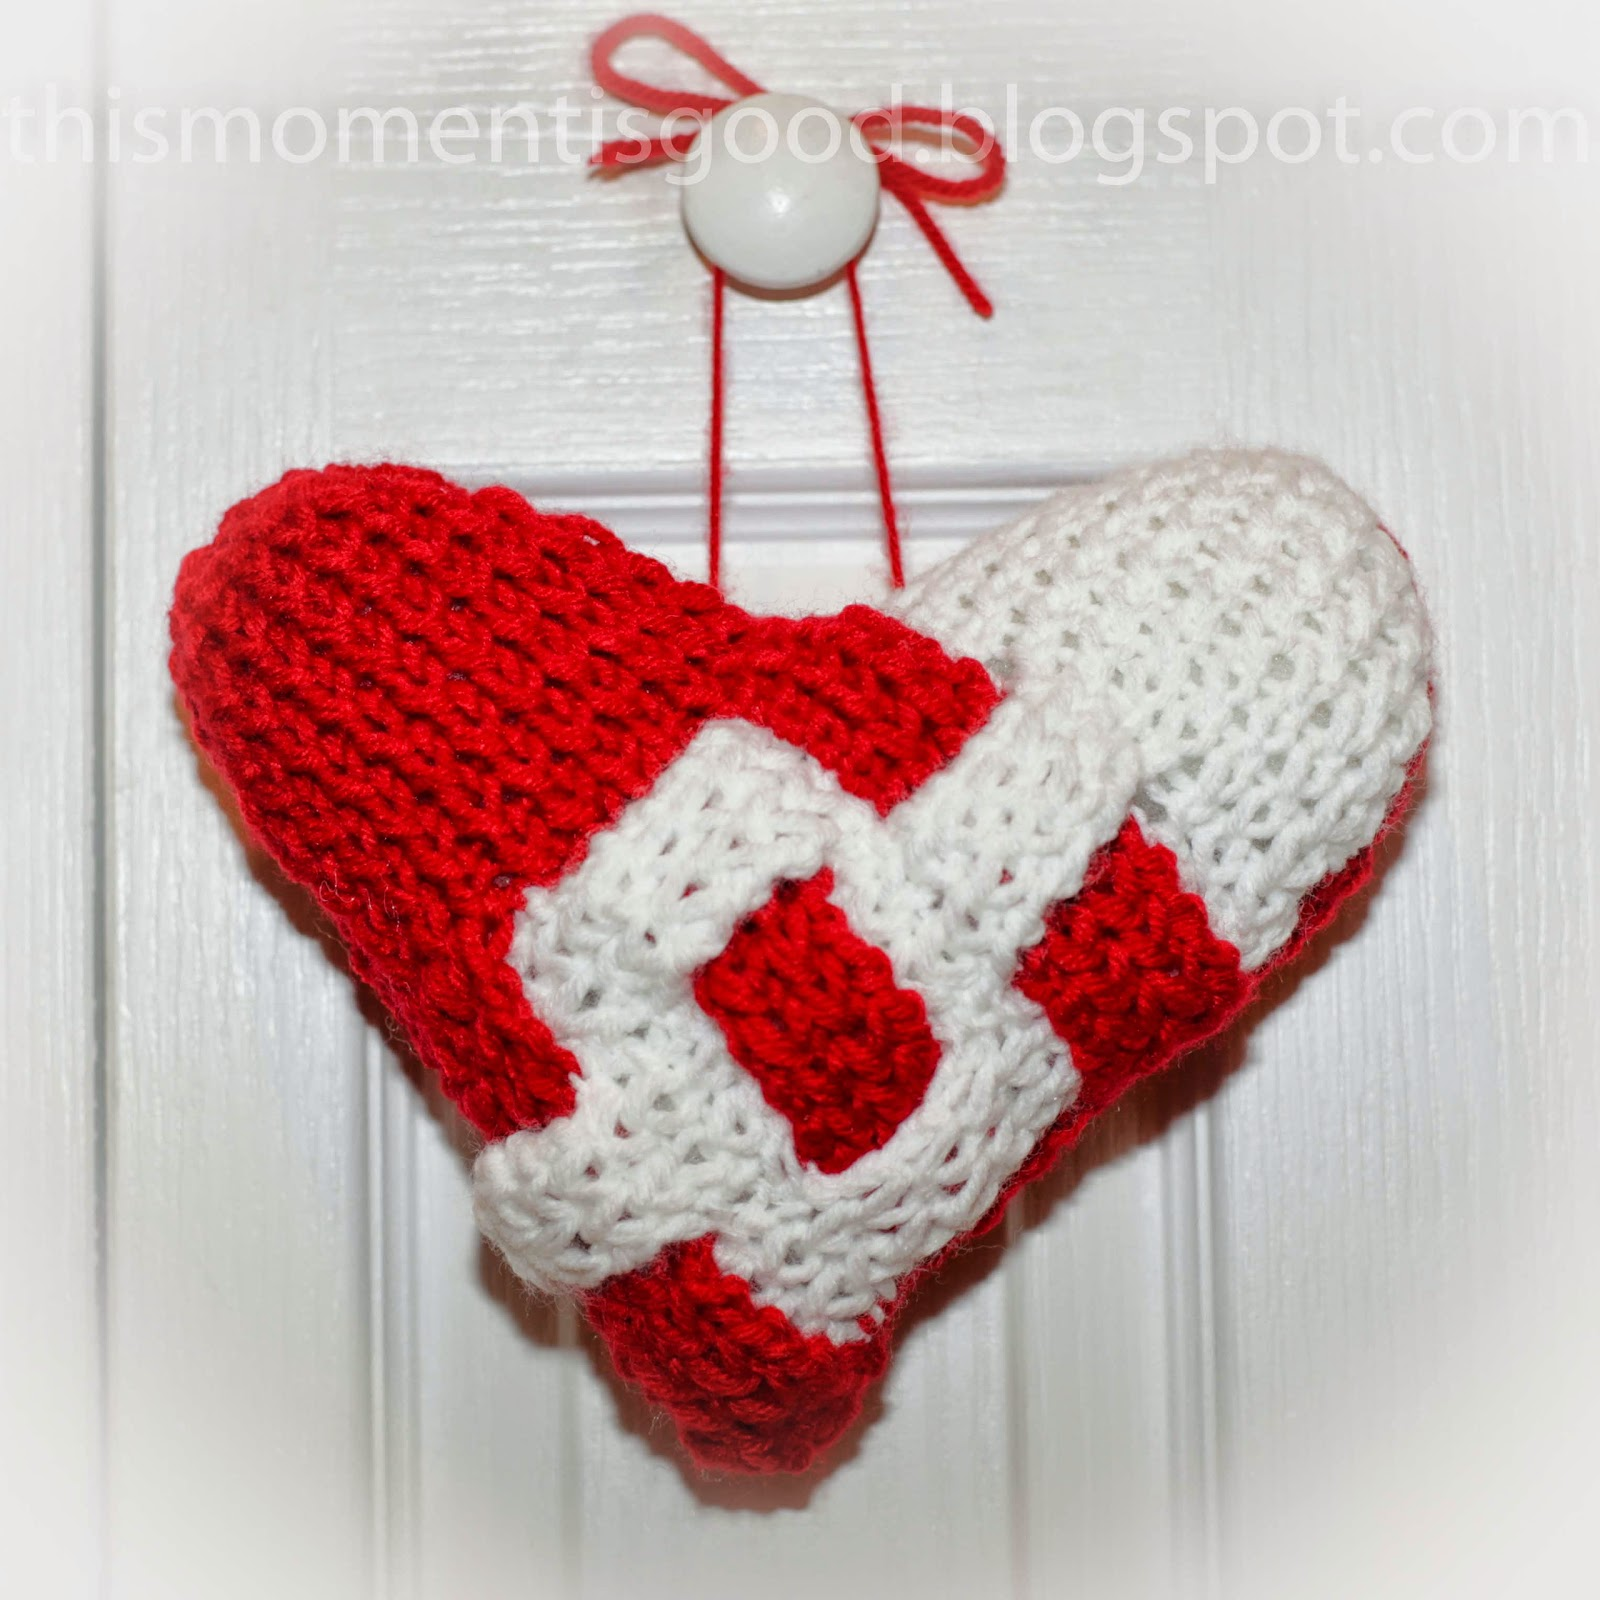 Knitted Heart Cushion Pattern : Loom Knitting by This Moment is Good!: LOOM KNIT HEART PILLOW PATTERN...